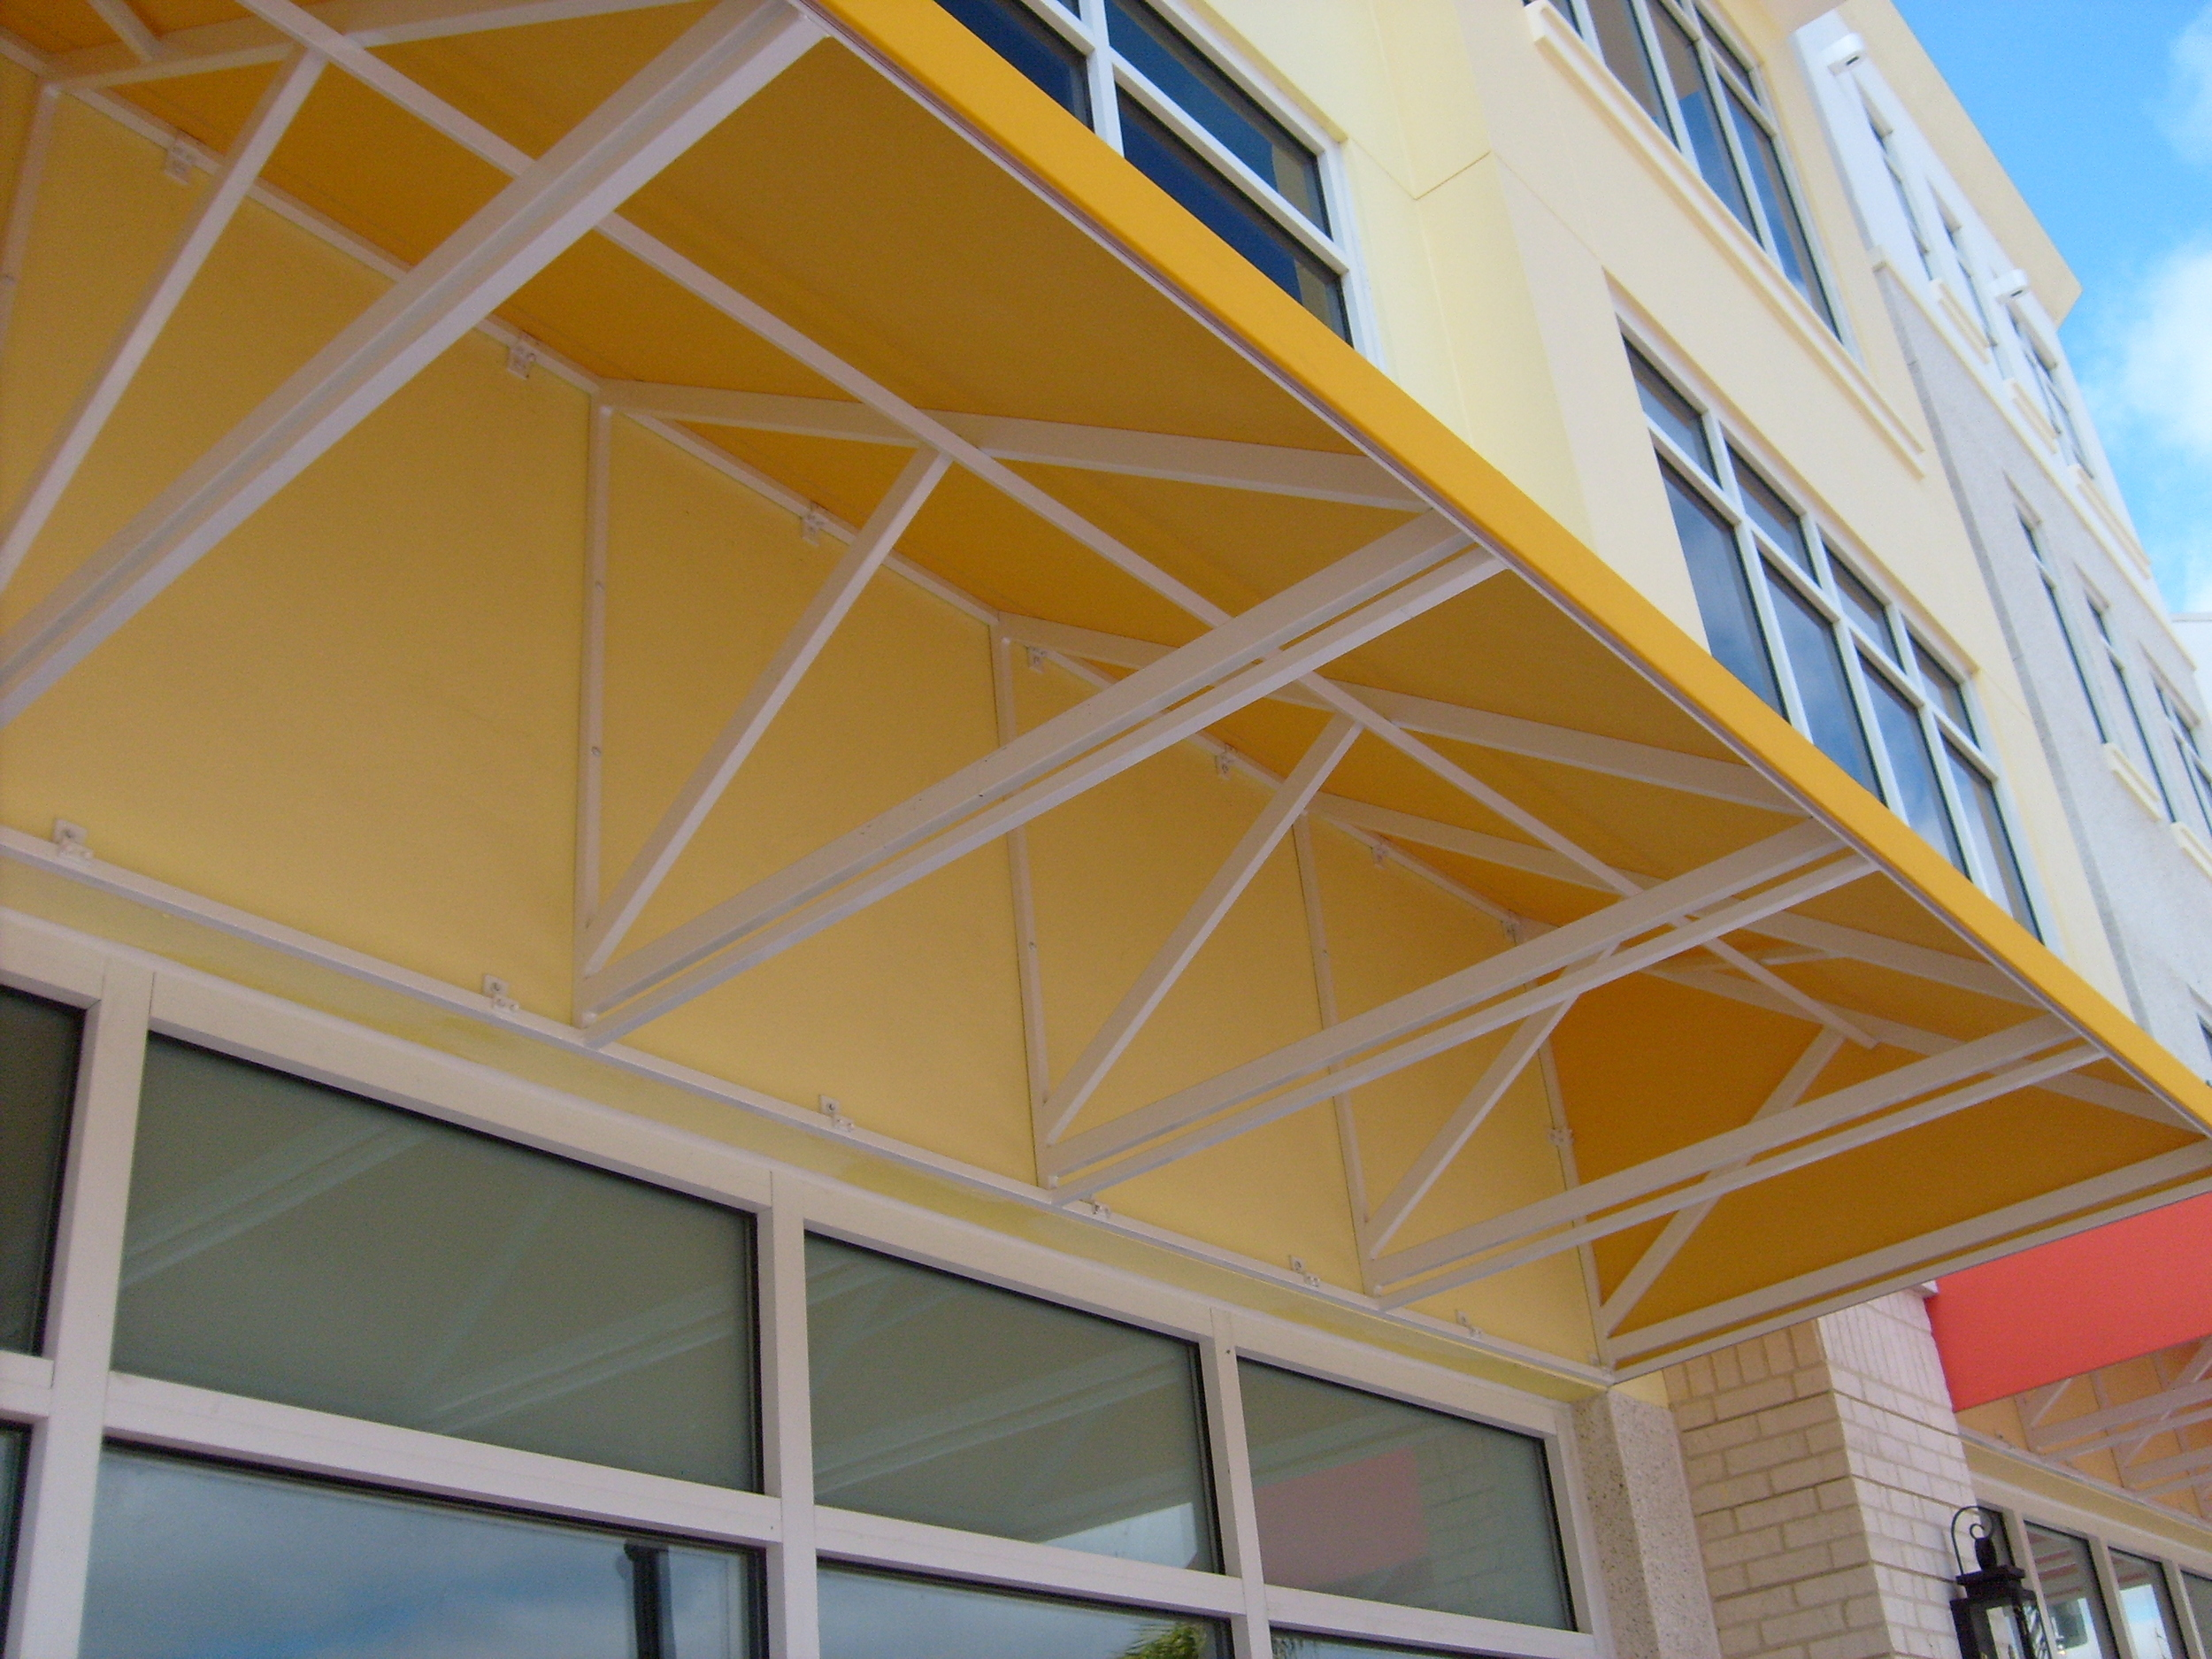 272 Sunbrella Fabric Covered Awning